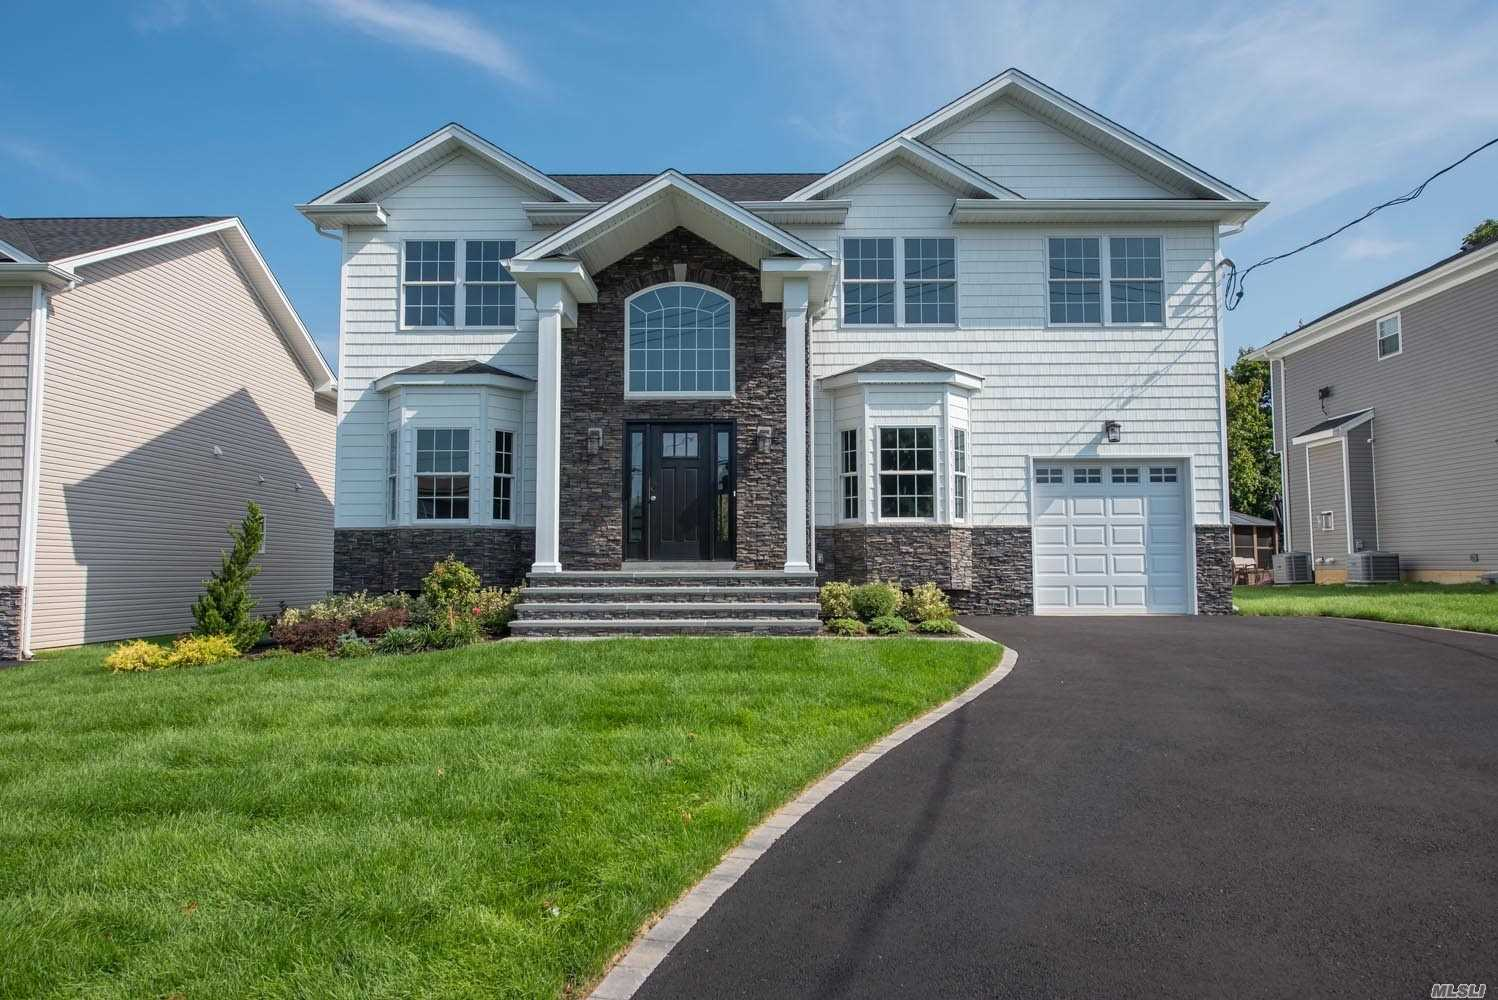 37 Convent Rd - Syosset, New York